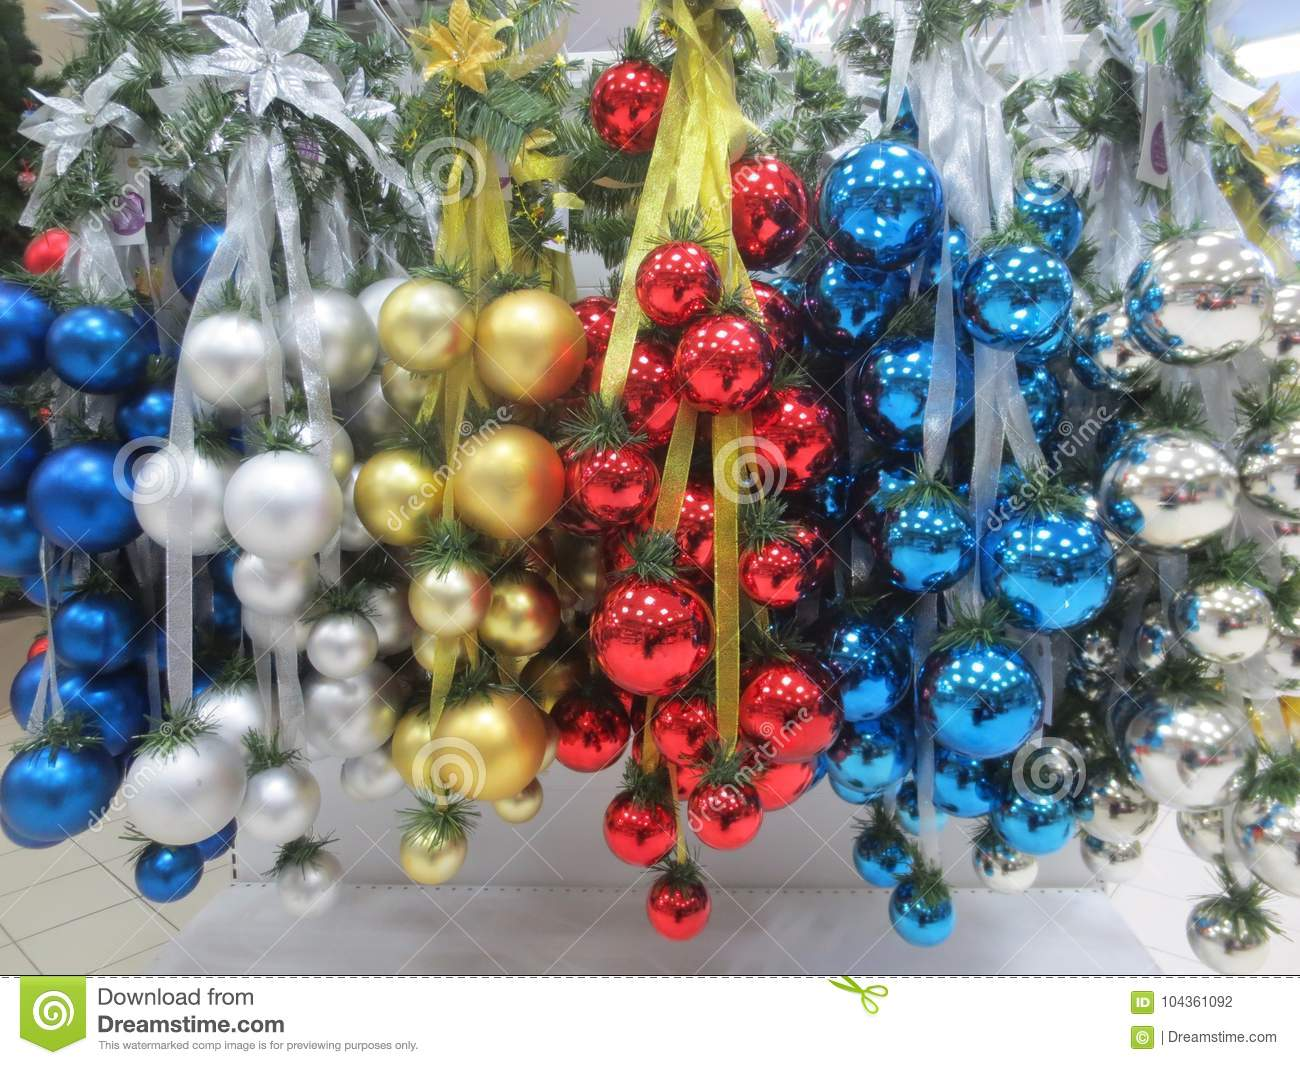 Christmas Decorations In The Store Stock Photo Image Of Green Colorful 104361092